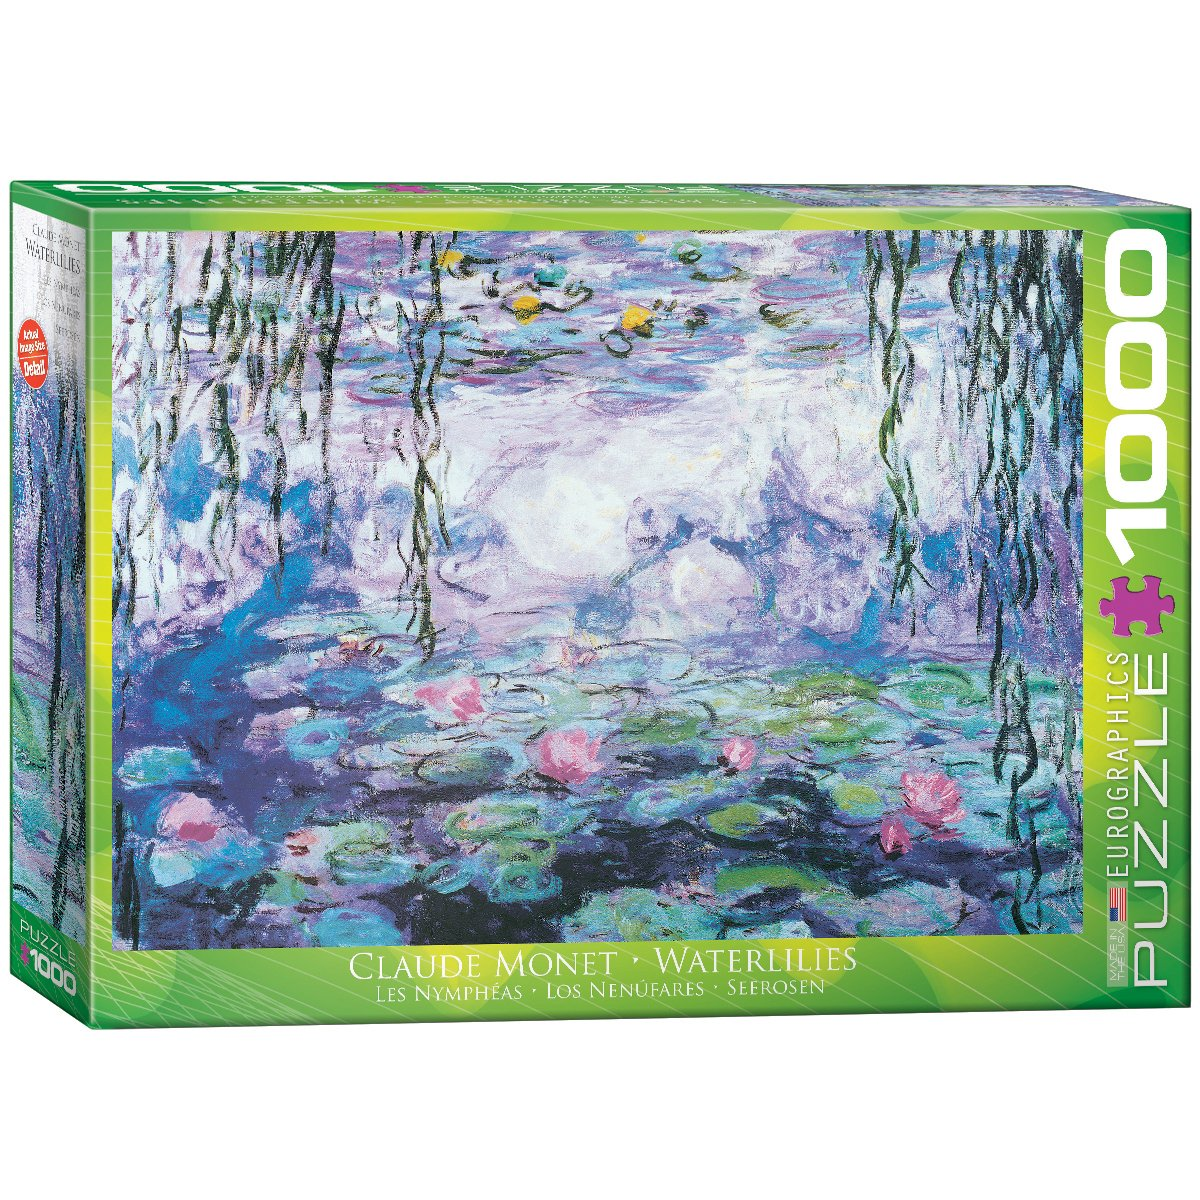 Eurographics Waterlilies by Claude Monet Puzzle (1000 Pieces) 6000-4366